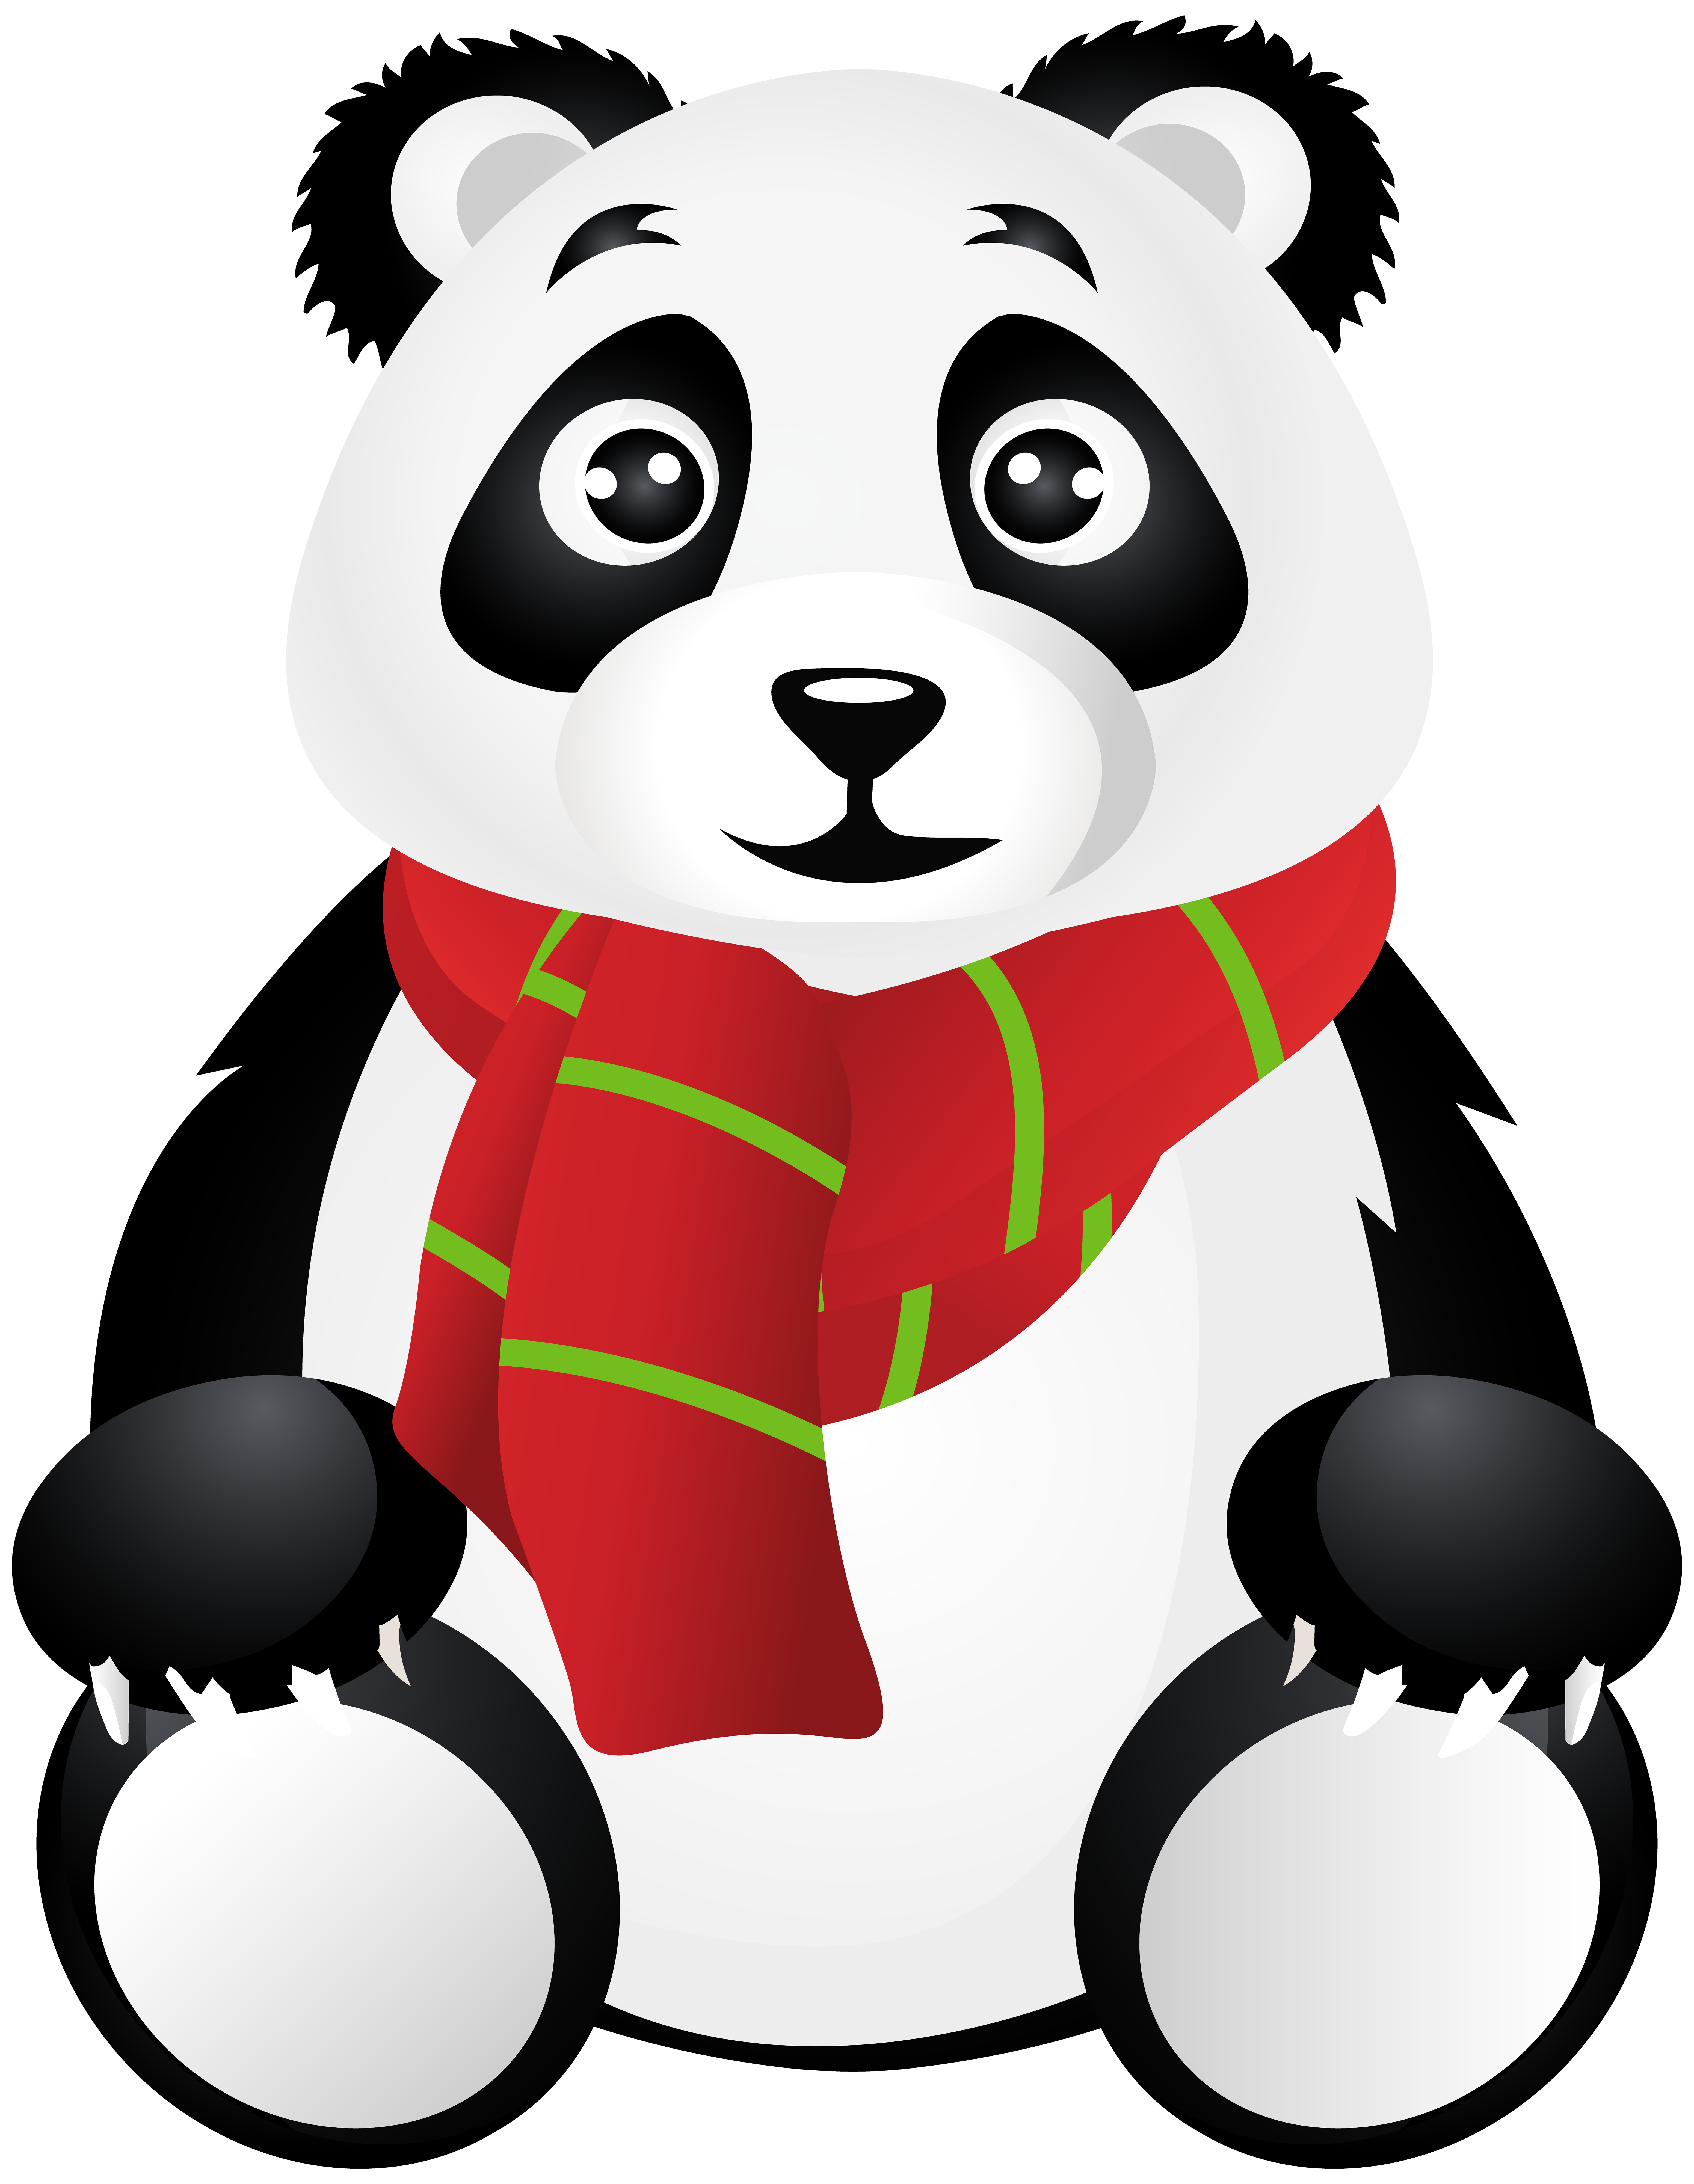 Panda bear halloween clipart graphic Panda with Scarf Transparent Clip Art | Gallery Yopriceville - High ... graphic